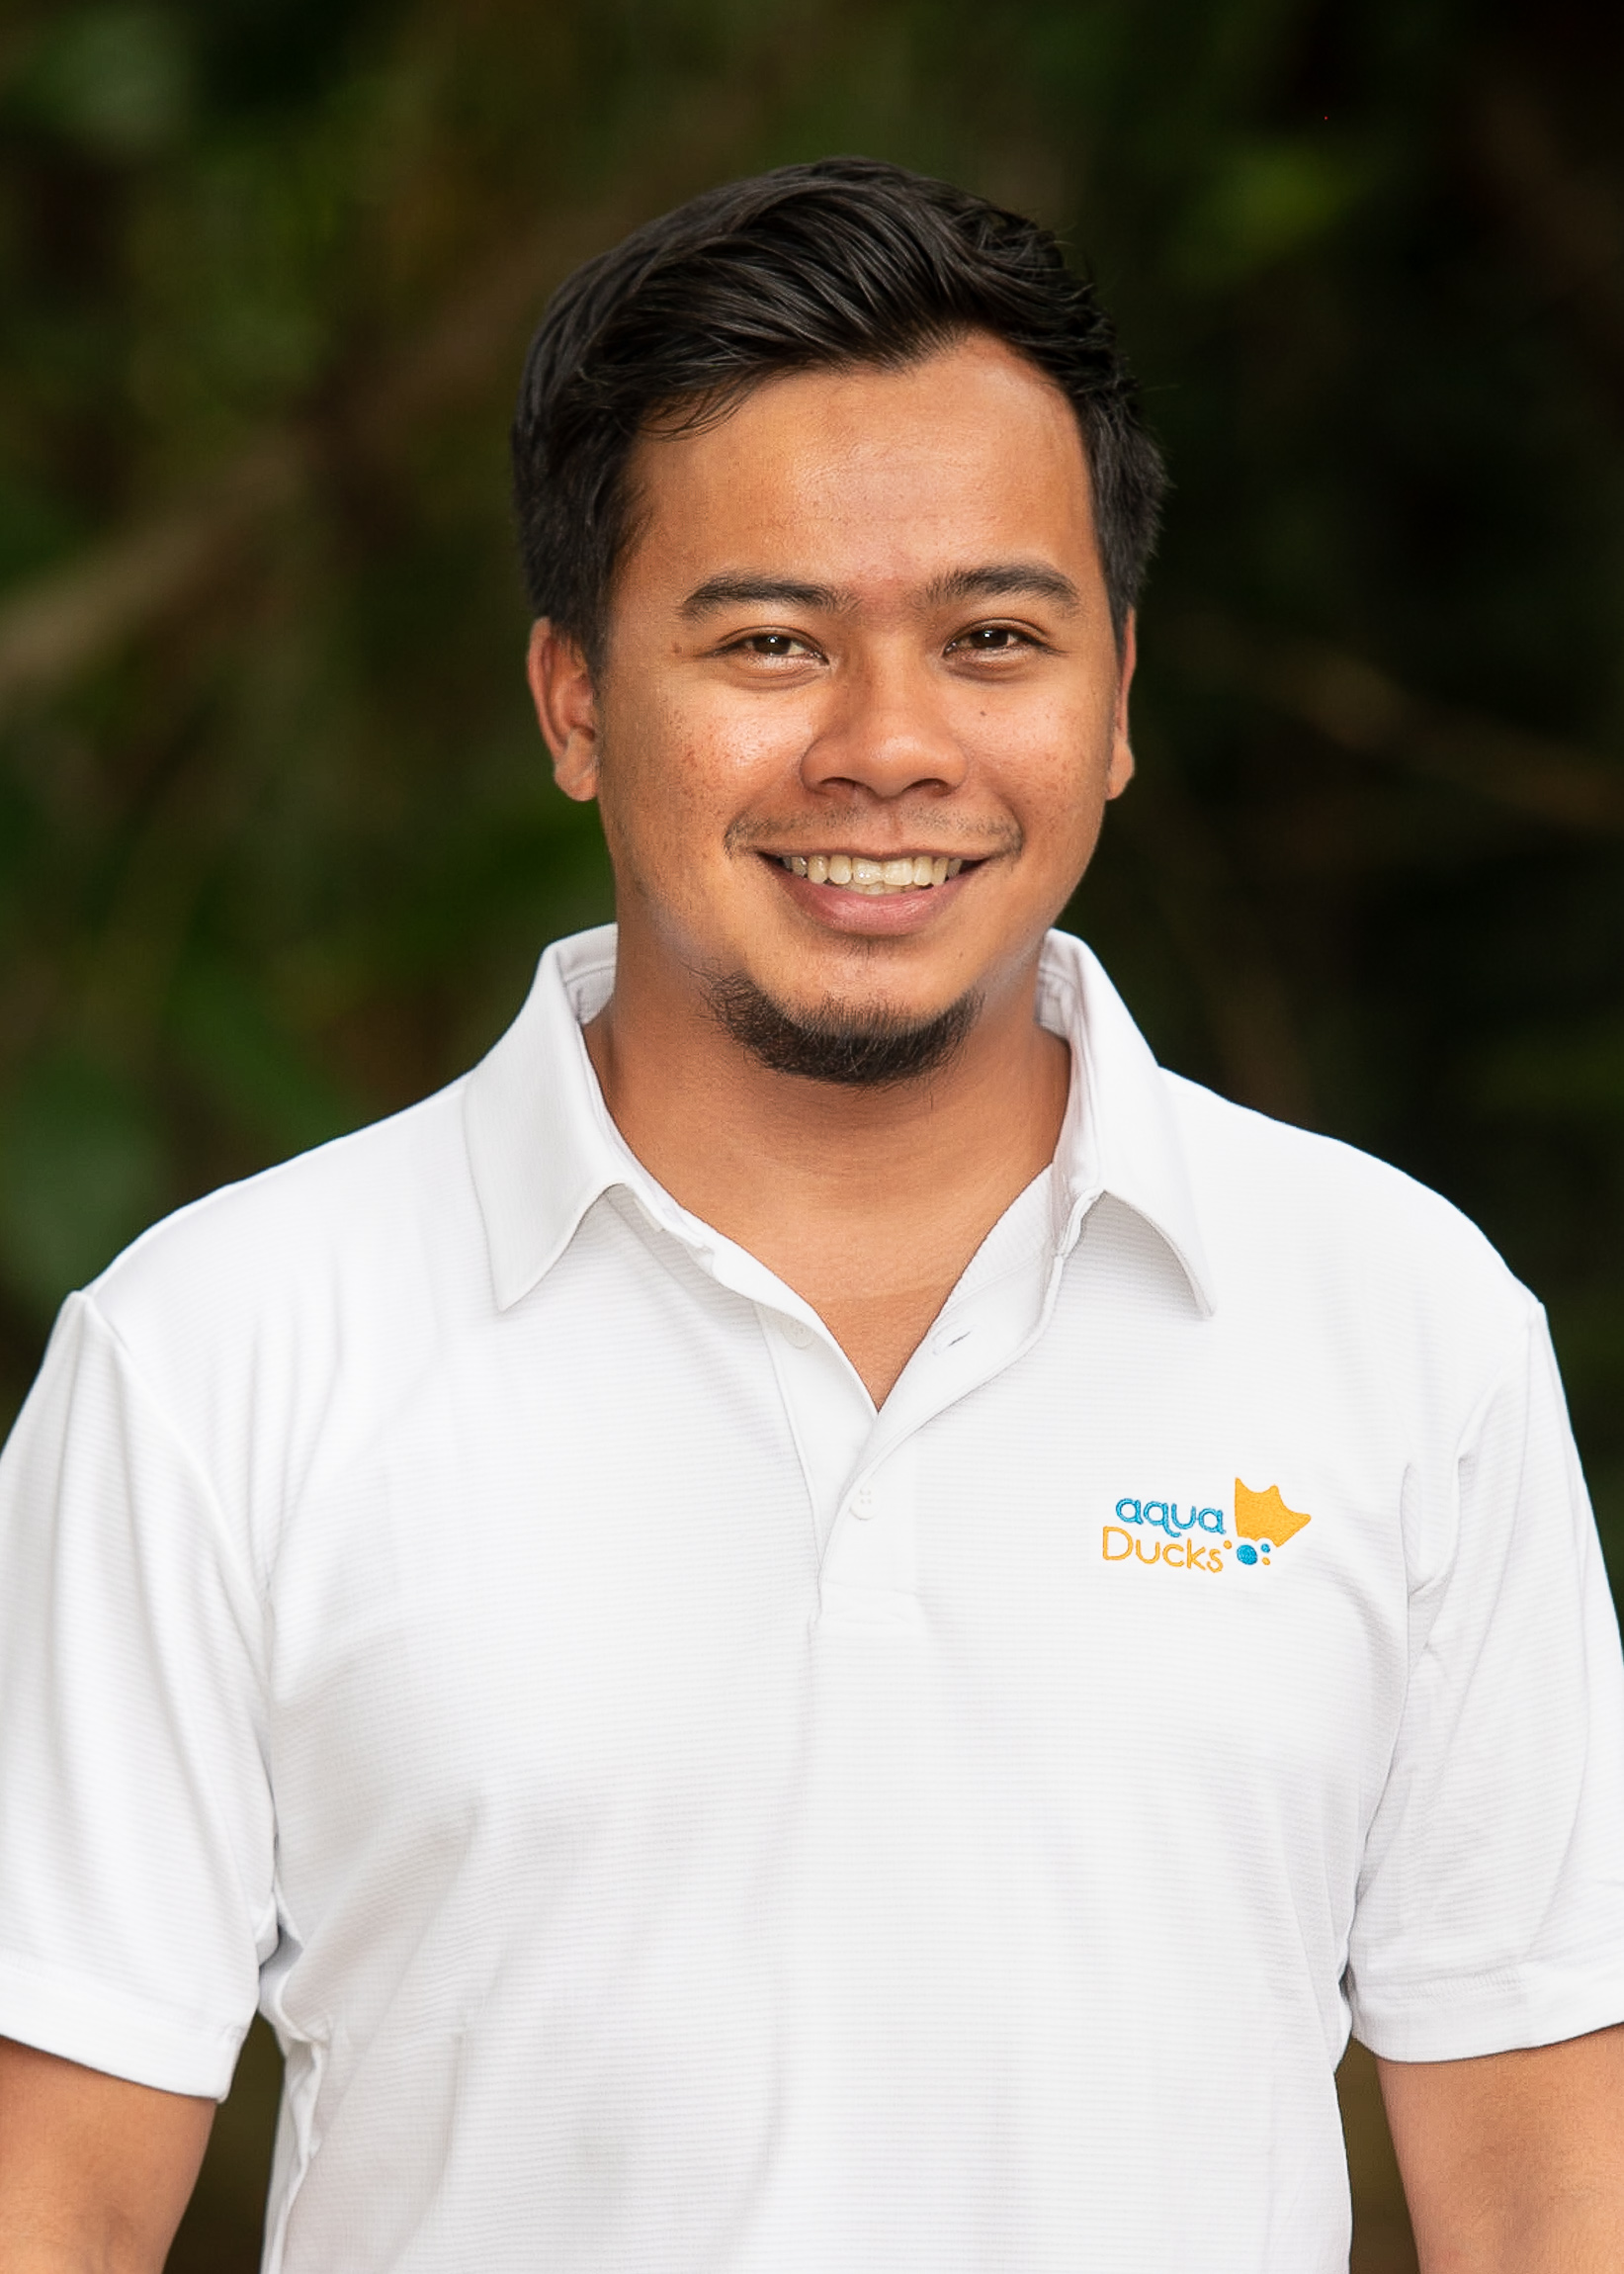 aquaDucks | Our Team - Syazani (Tom)